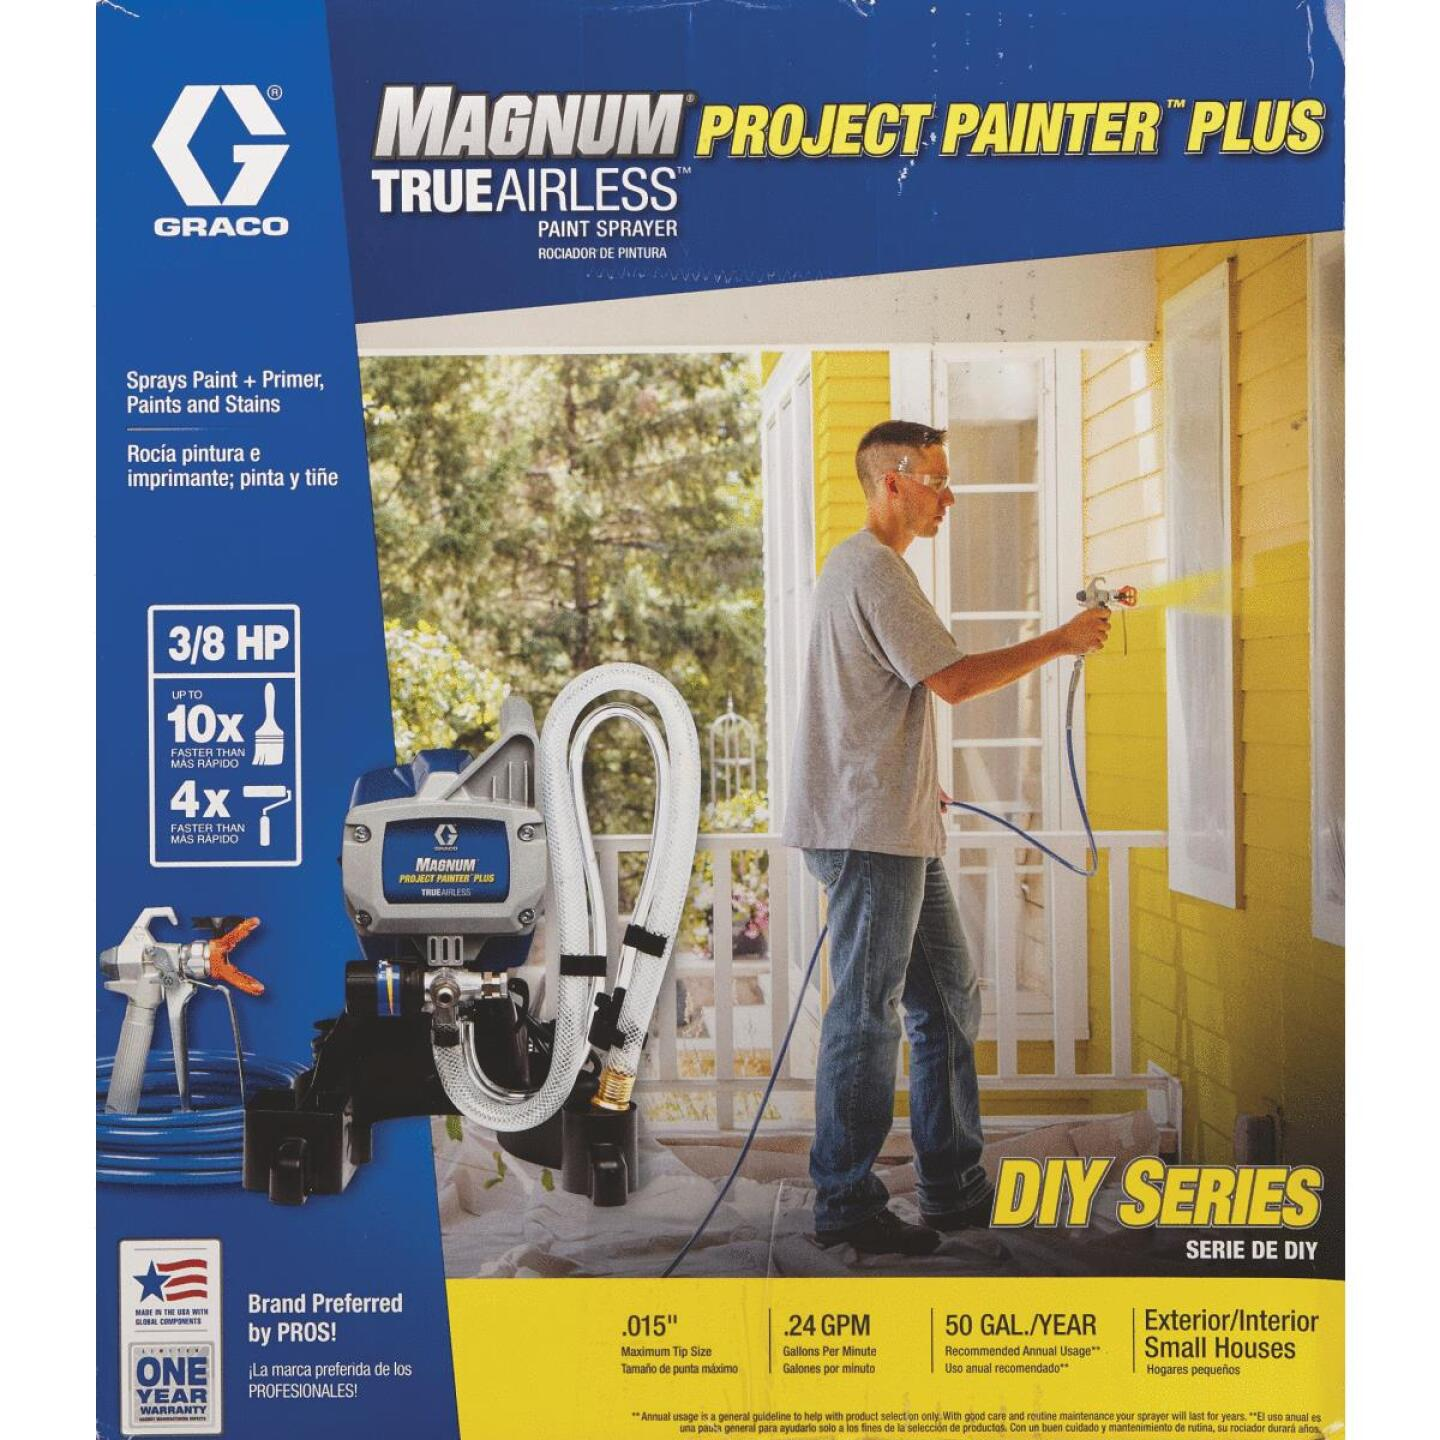 Graco Magnum Project Painter Plus Airless Paint Sprayer Image 2